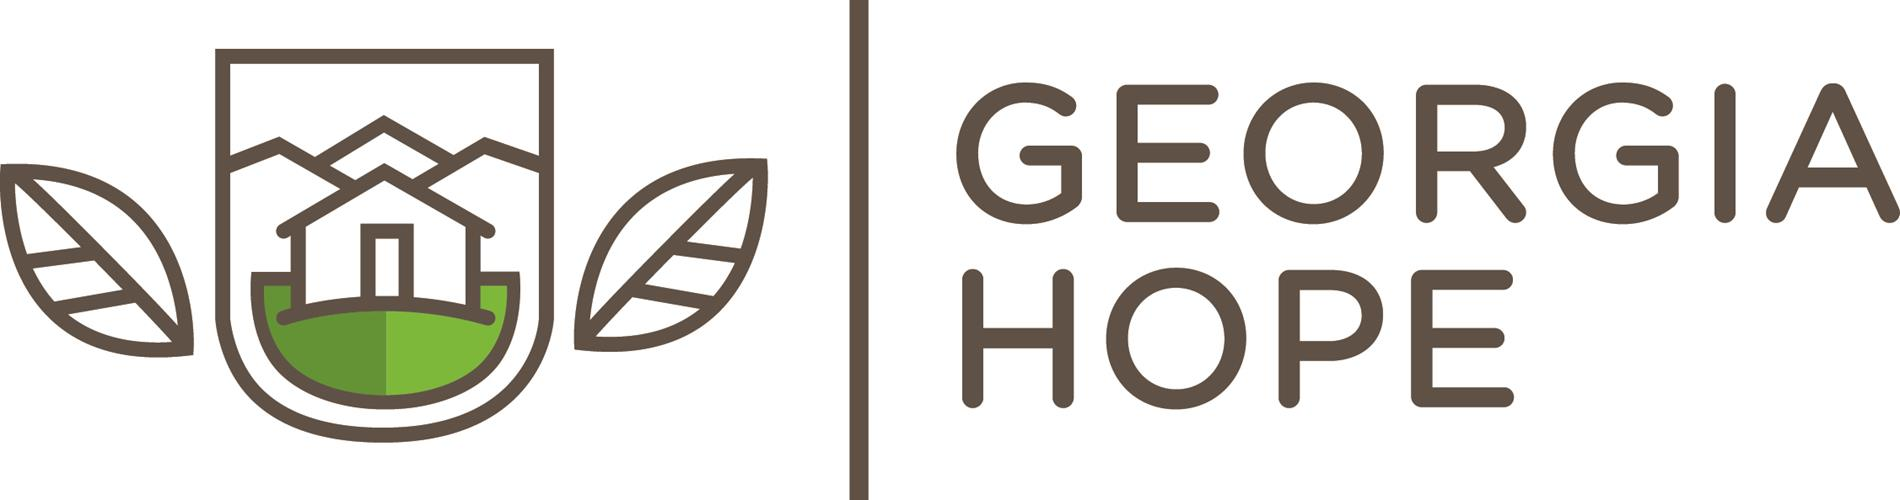 Georgia Hope- Student and Family Mental Health Check-in